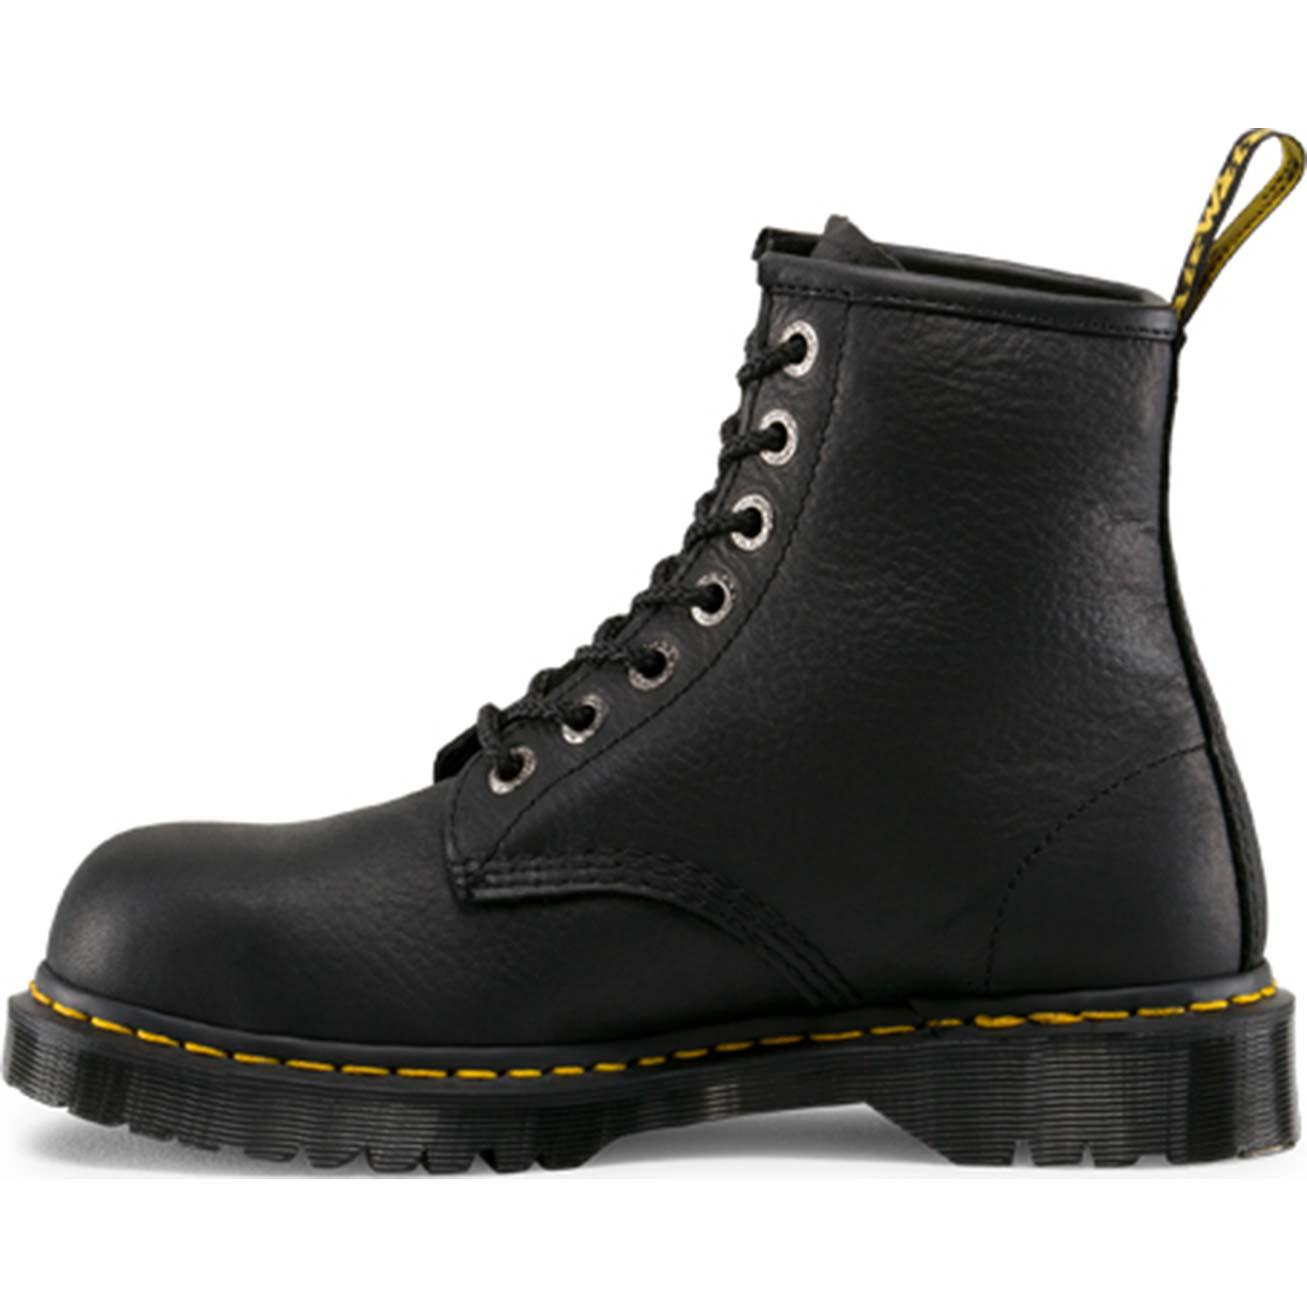 607e3d884c6 Dr. Martens Icon 7B10 Unisex Steel Toe Work Boot